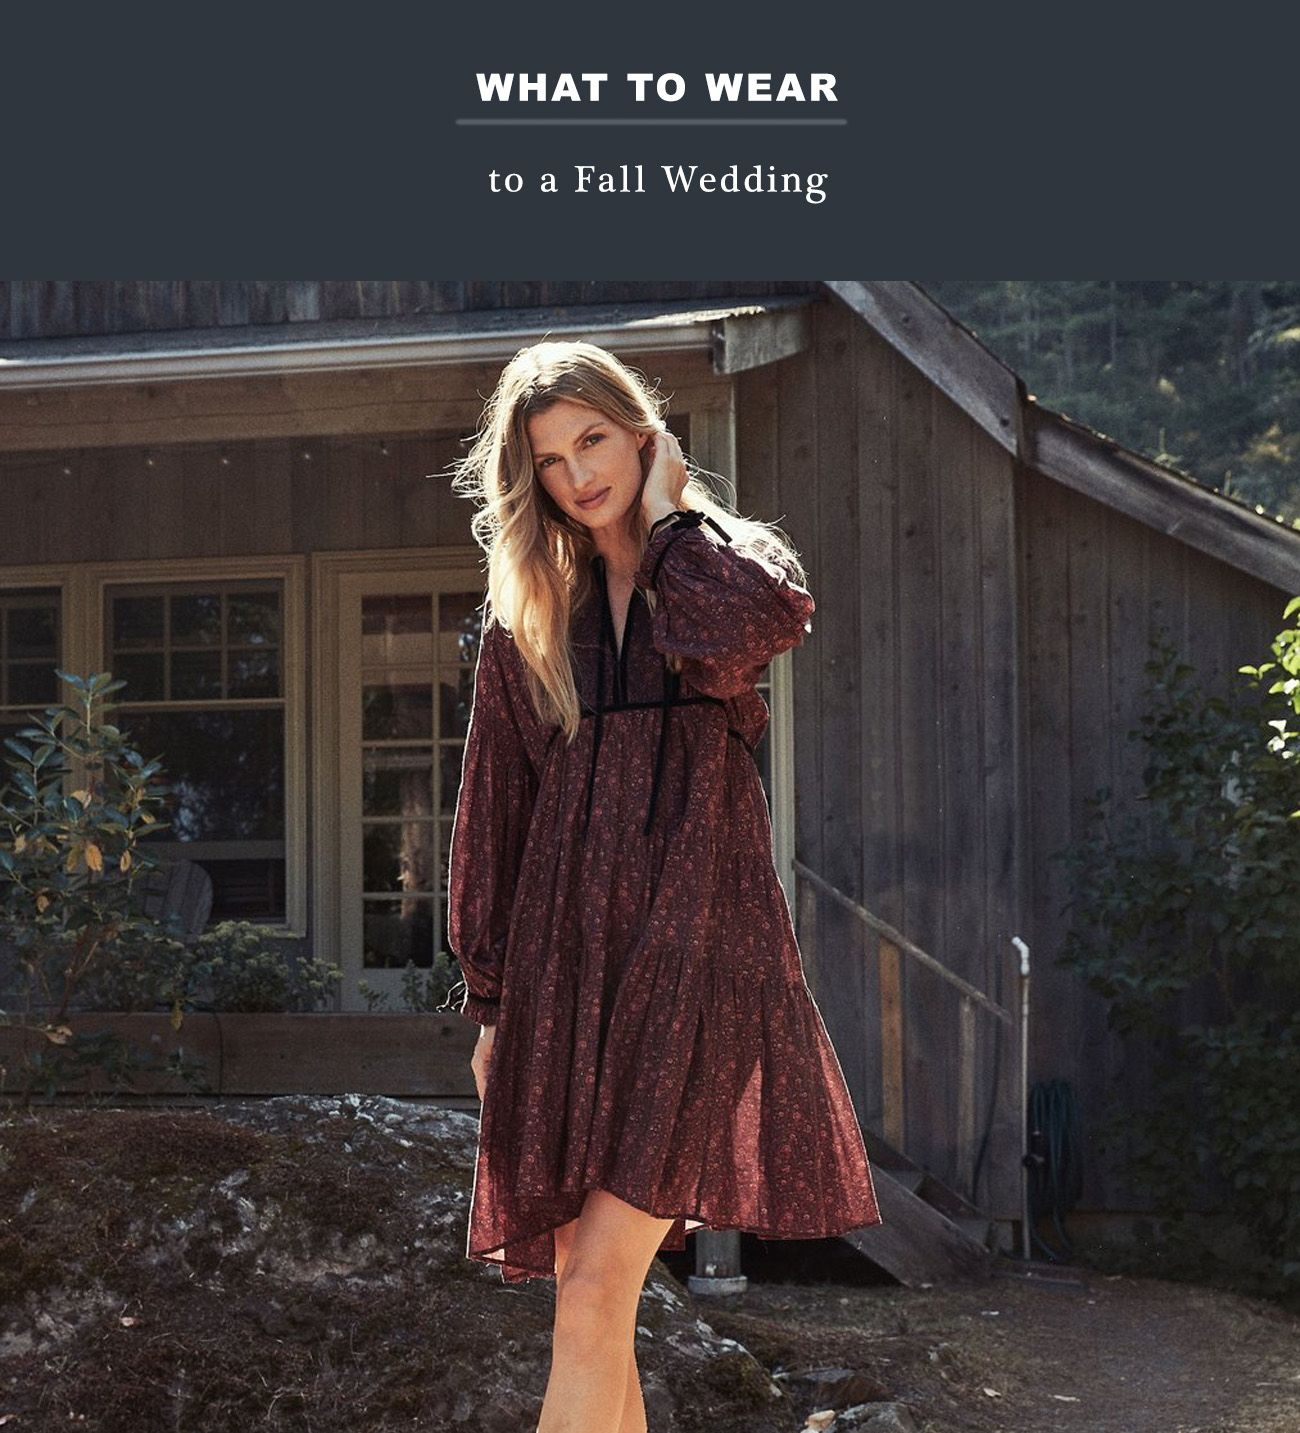 What to Wear to a Fall Wedding: 65 Dresses for Guests